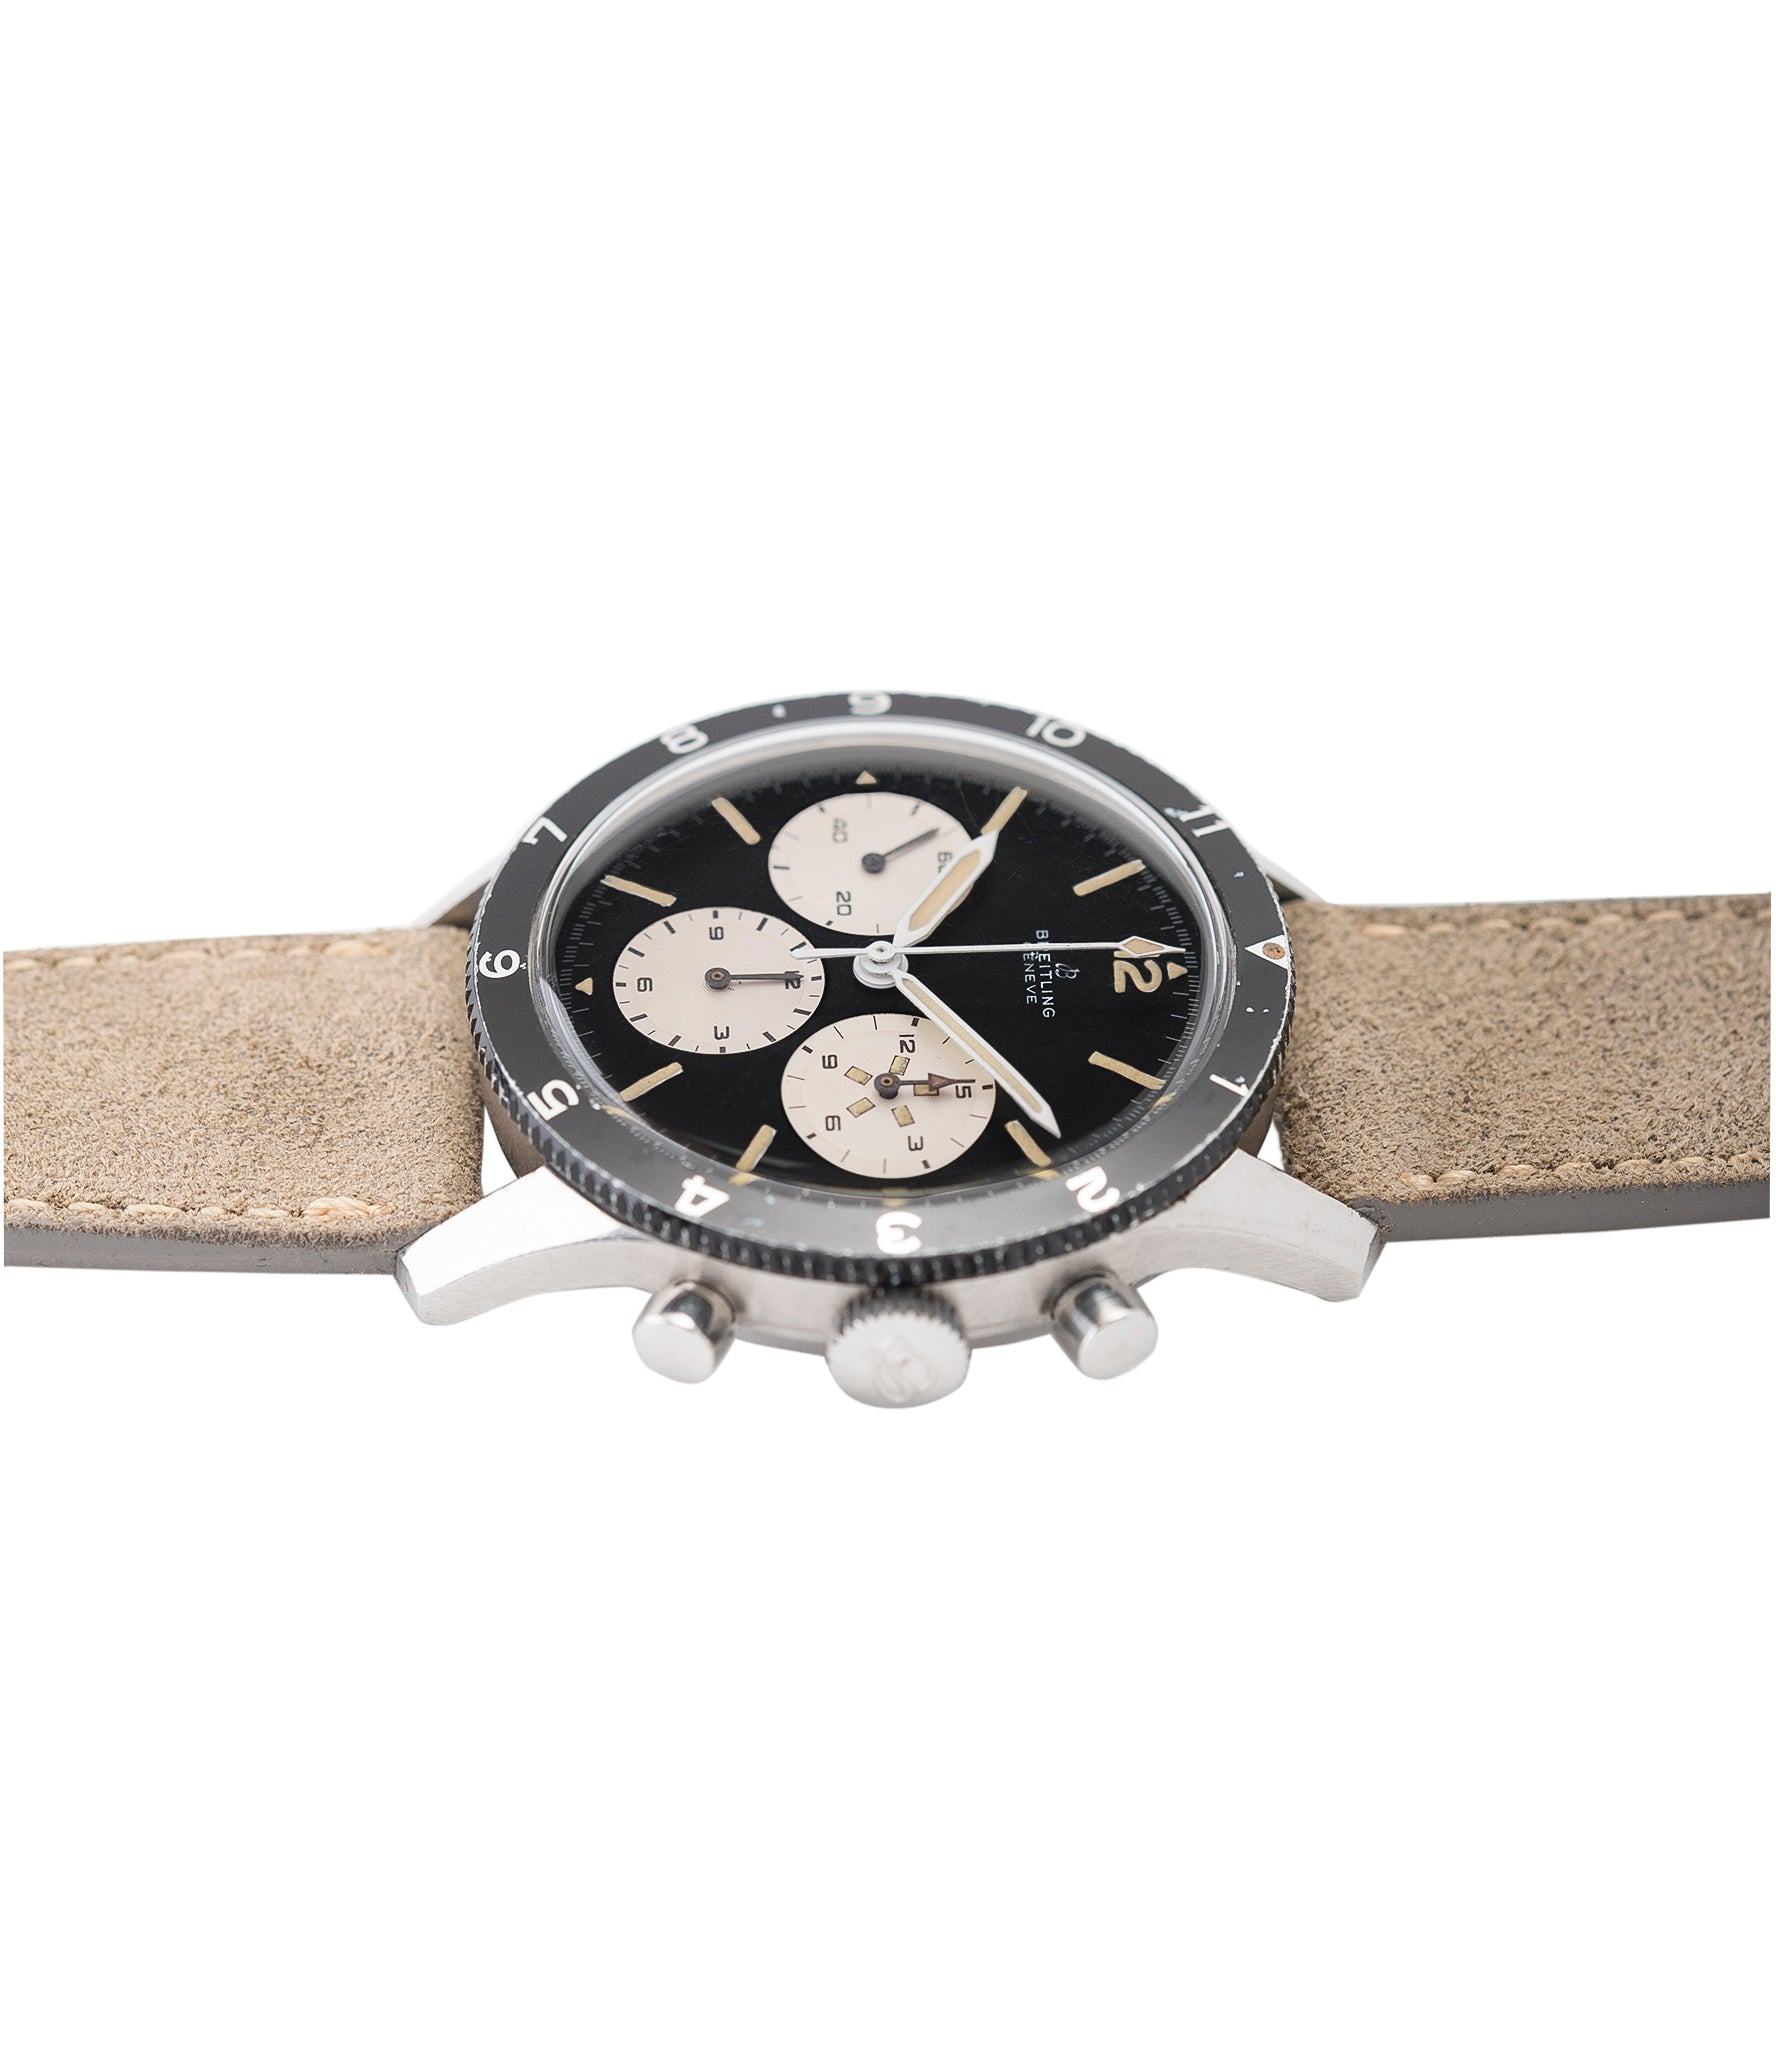 buying Breitling 765 AVI pilot steel vintage chronograph watch online at A Collected Man London UK specialist of rare vintage watches